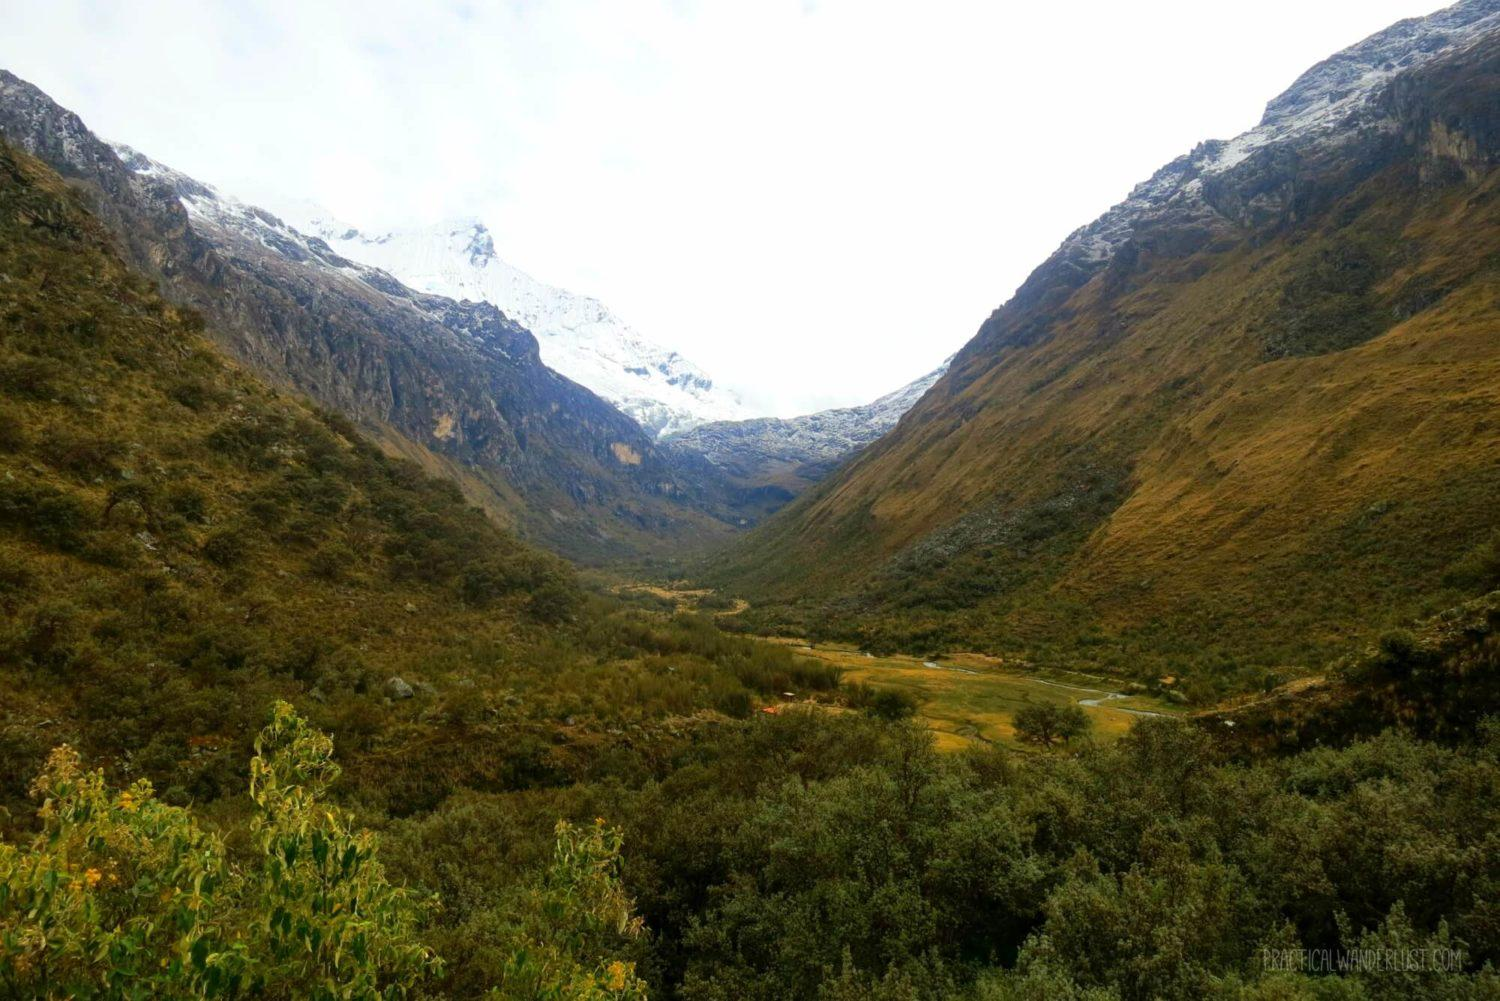 This valley sitting between two glaciers is just off the bus from Huaraz on the way to the Laguna 69 trailhead. A breathtaking start to the trek.